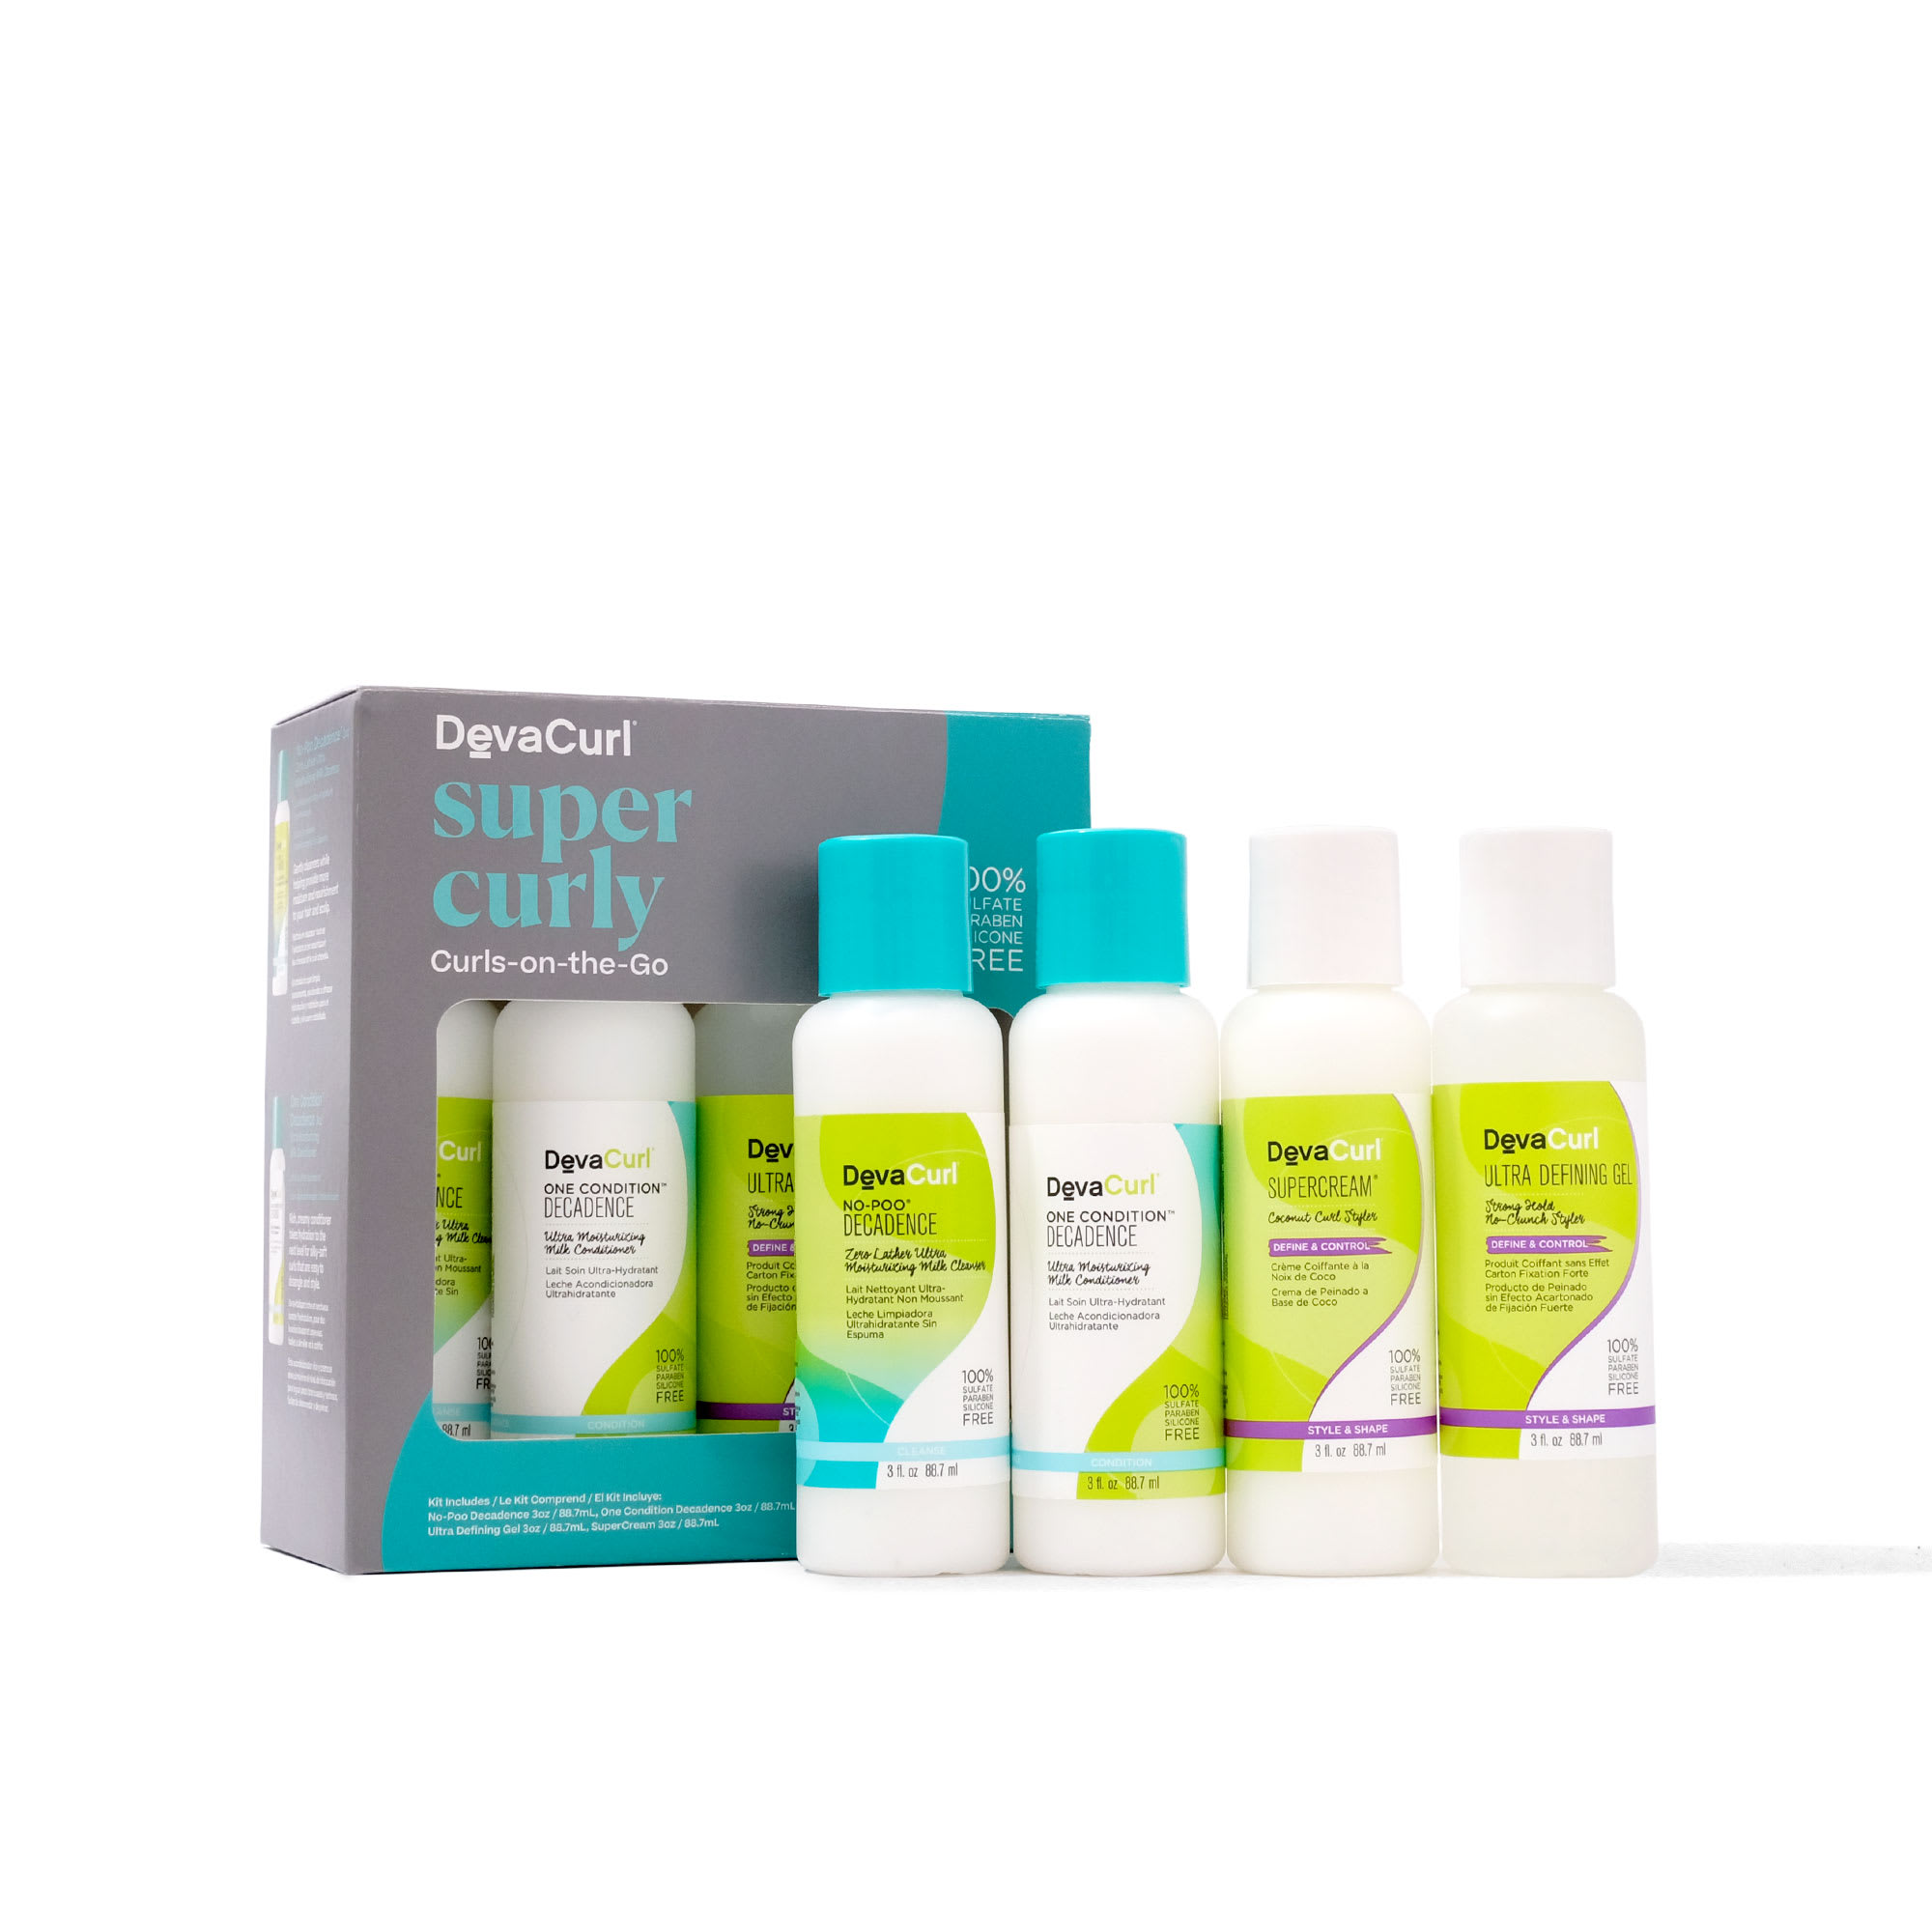 devacurl super curly curls on the go box with contents outside